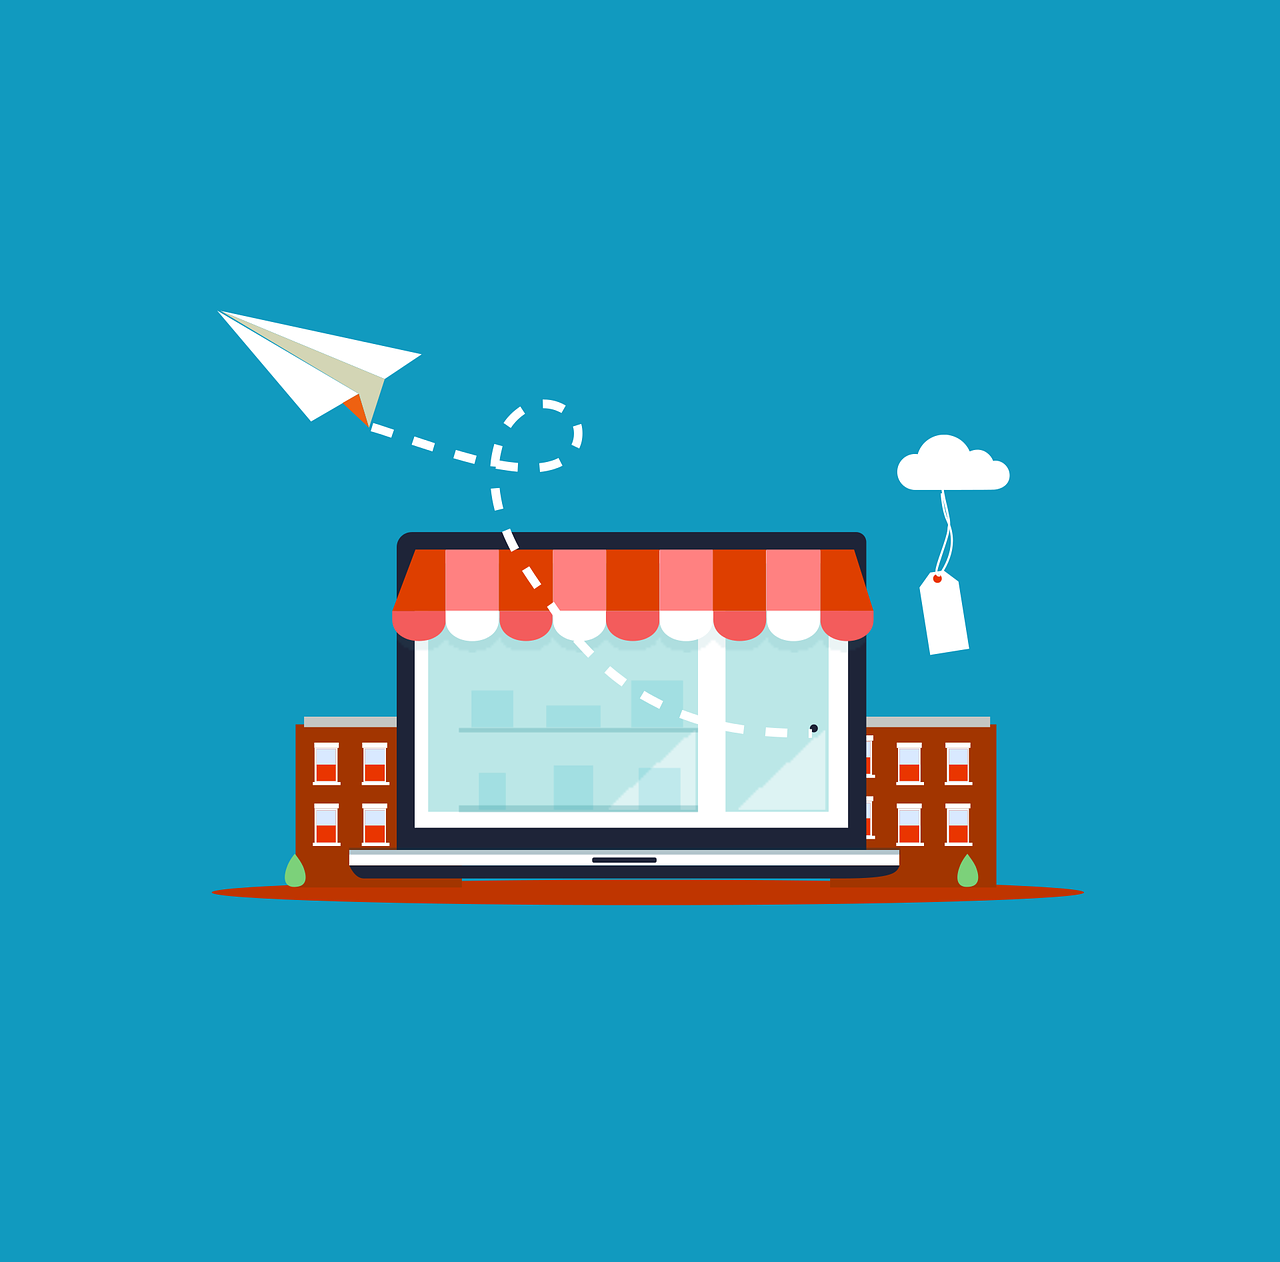 How to Maintain and Protect Successful Ecommerce Business